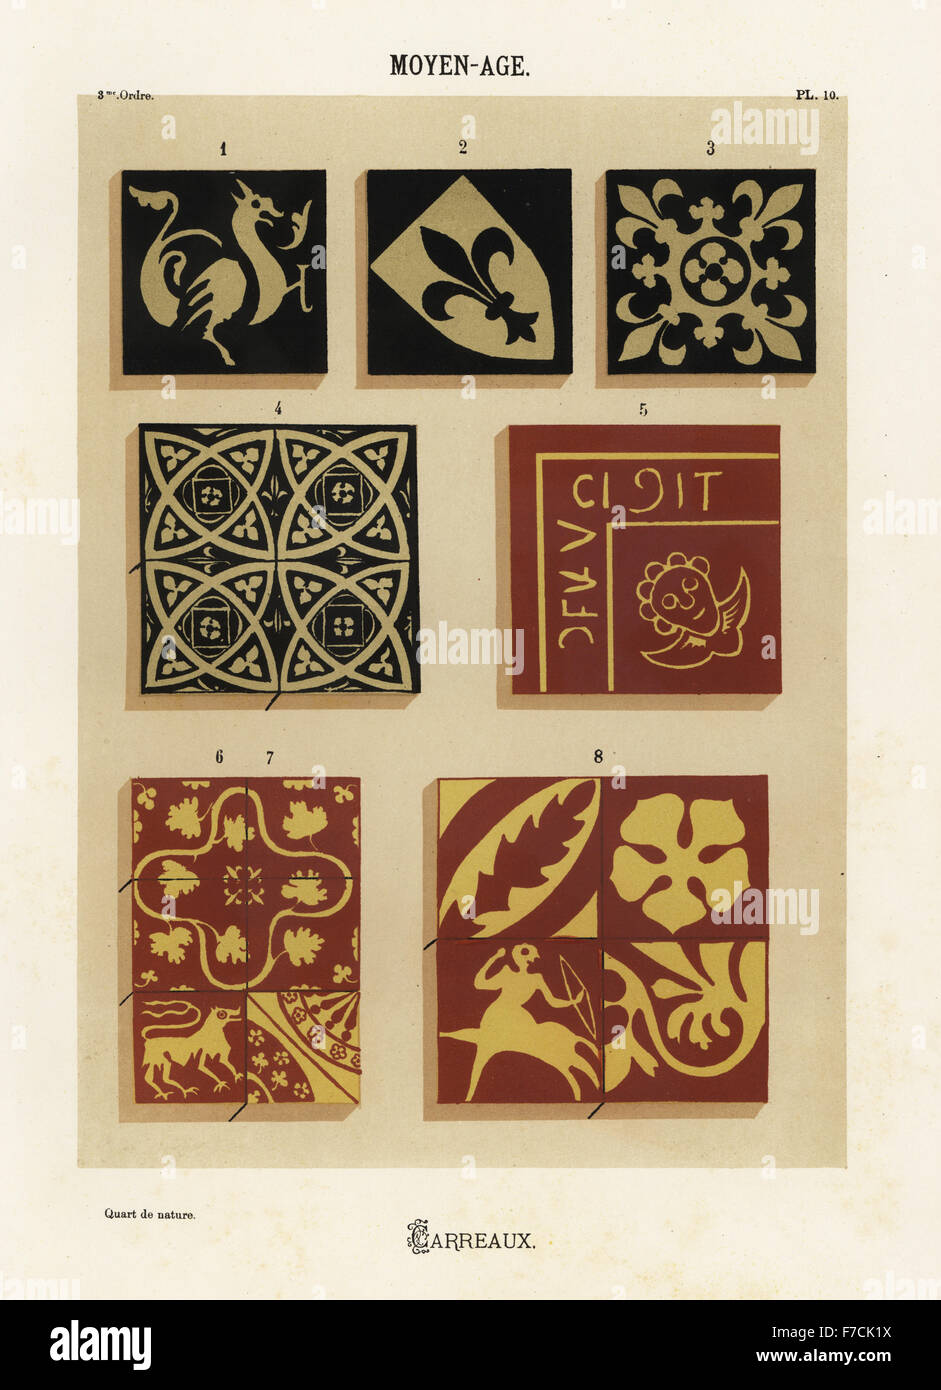 Ceramic tiles with heraldic designs middle ages hand finished ceramic tiles with heraldic designs middle ages hand finished chromolithograph from ris paquots general history of ancient french and foreign glazed dailygadgetfo Images